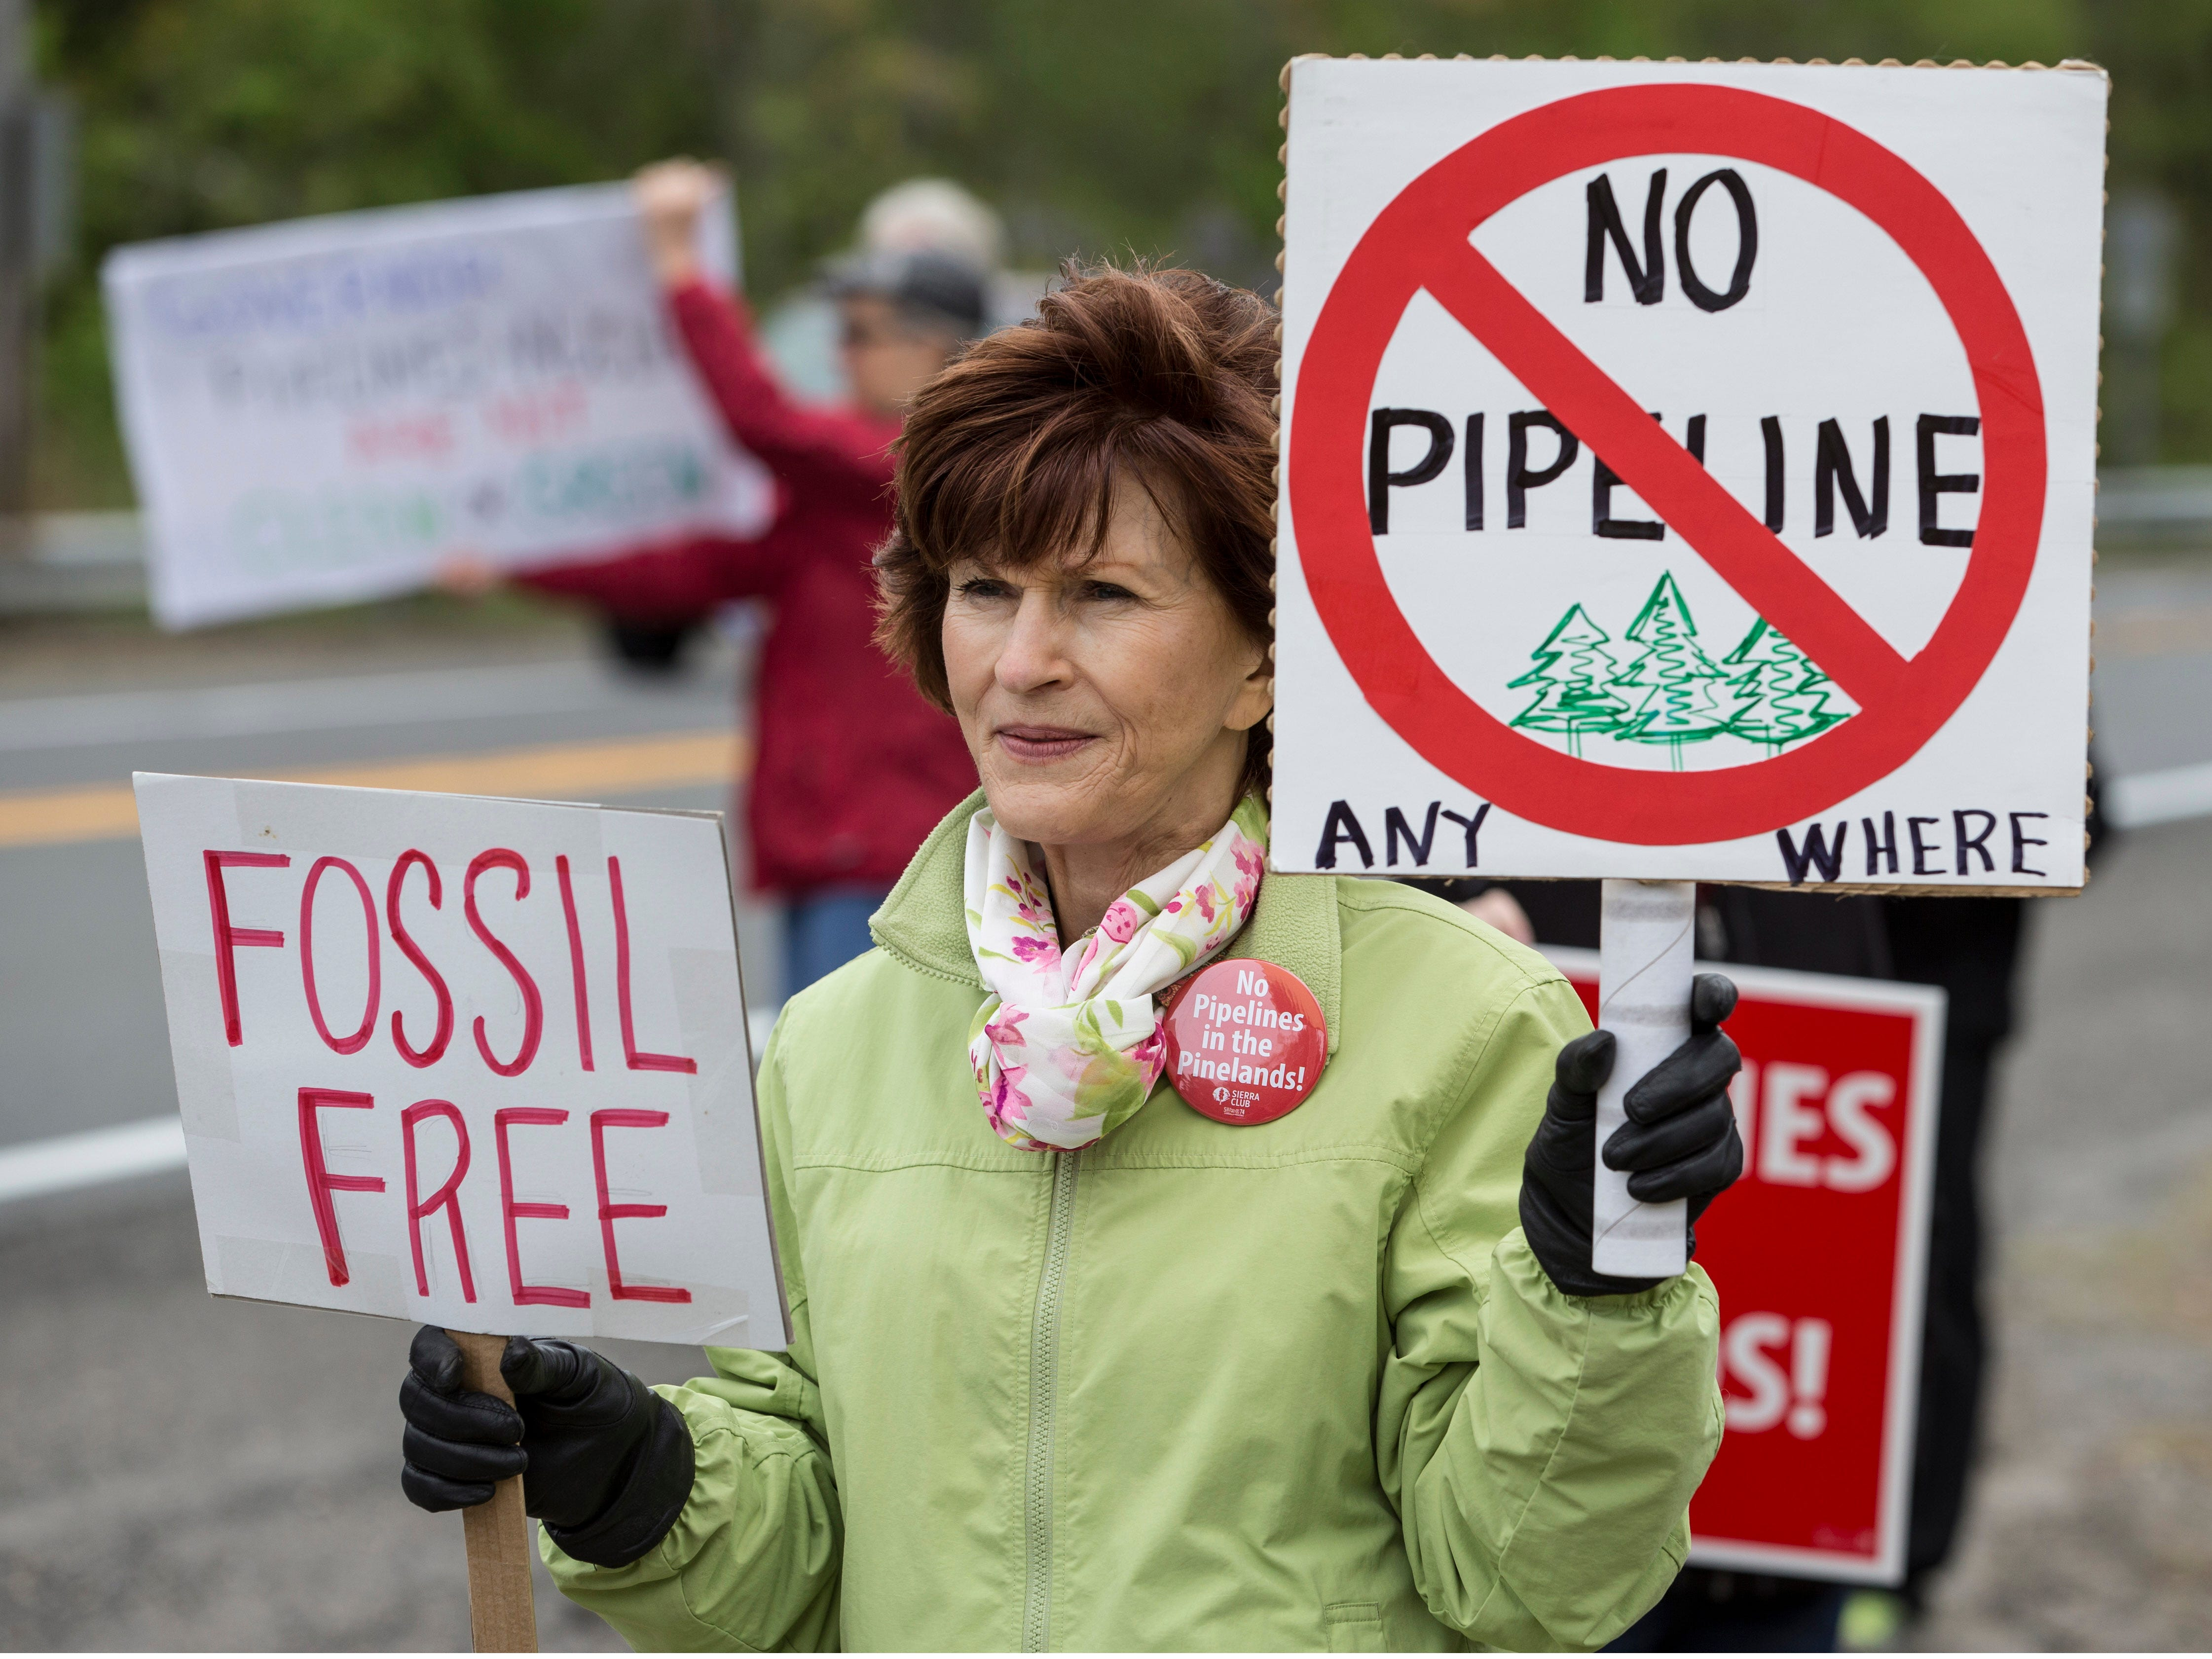 Susan Uscenski of Barnegat holds a sign in protest of the pipeline. On Friday, May 3rd, environmental advocates along with others hold a demonstration in opposition to the Southern Reliability Link (SRL) Pipeline. Despite being in ongoing litigation, NJNG's SRL pipeline has started construction in Ocean County, Burlington County and scenic areas of the Pinelands in Manchester. Manchester, NJFriday, May 3, 2019